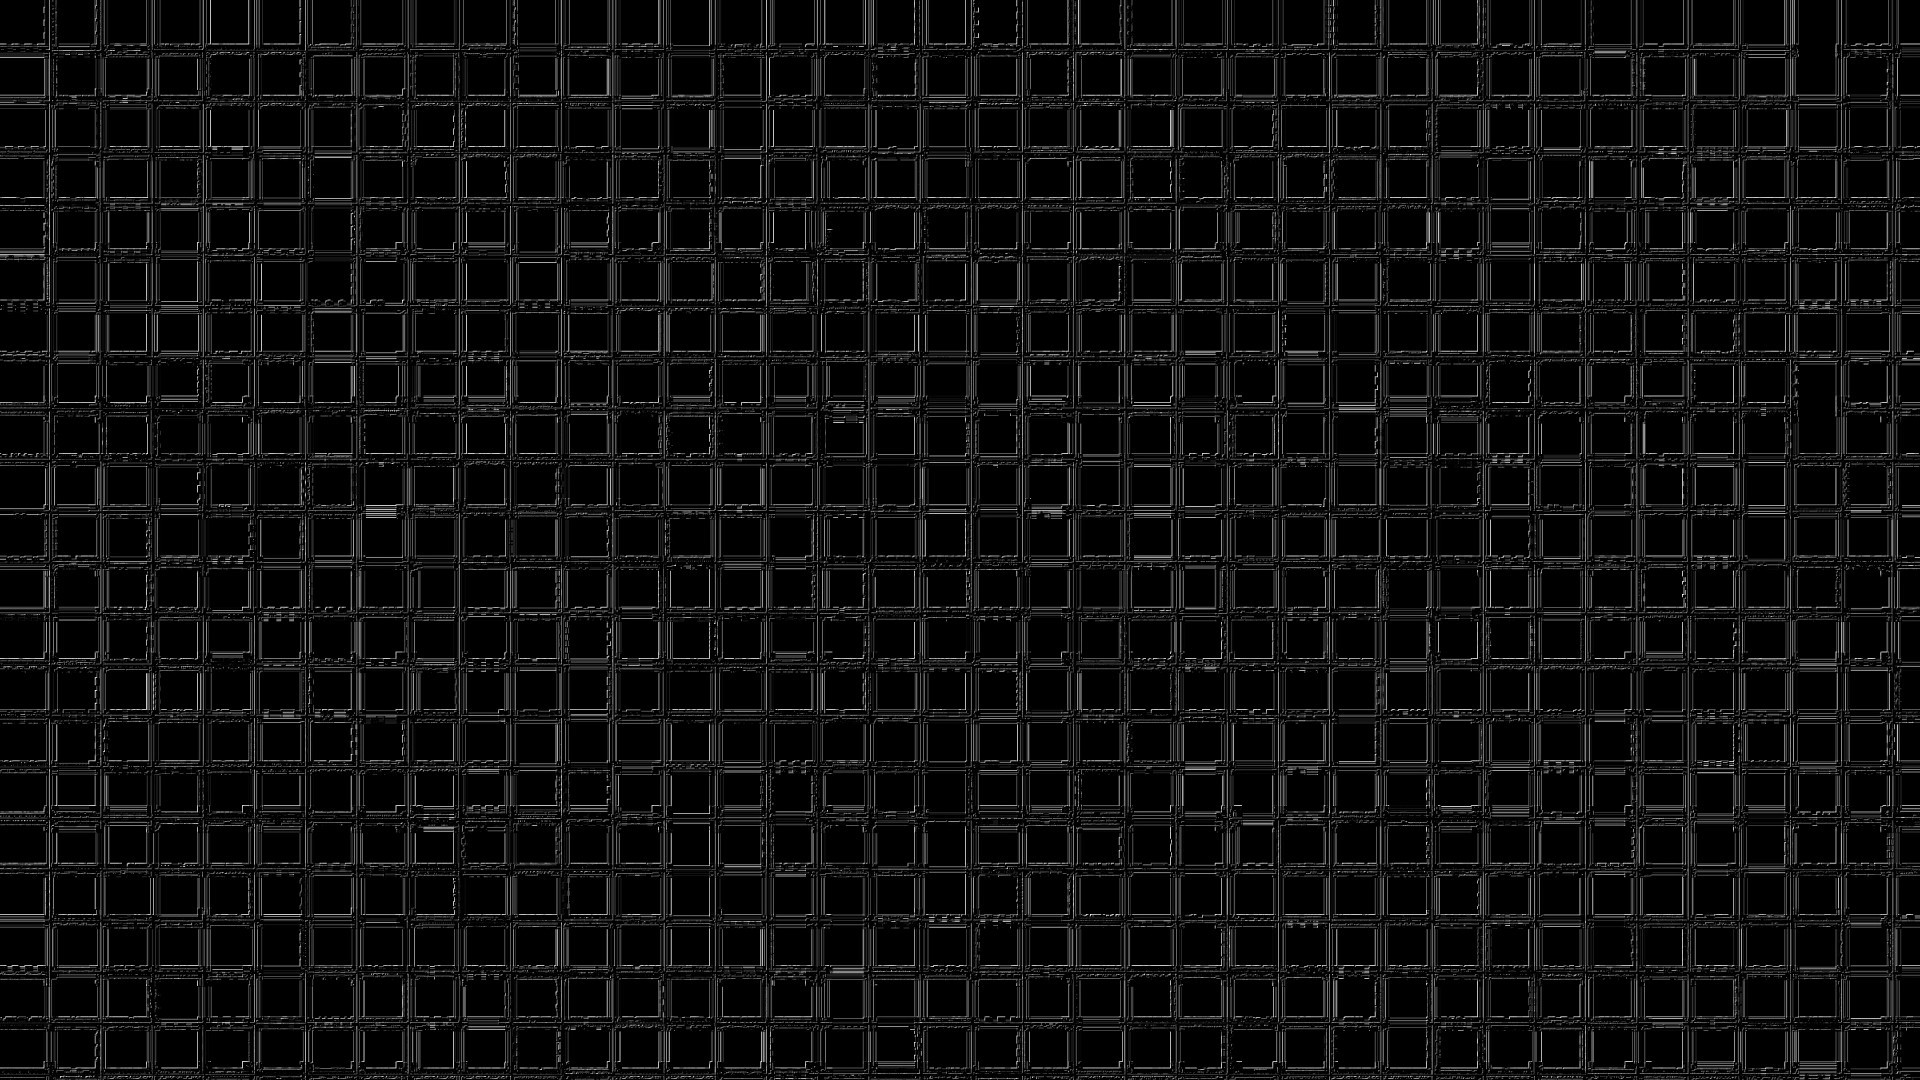 1920x1080 Black Squared Wallpaper Background